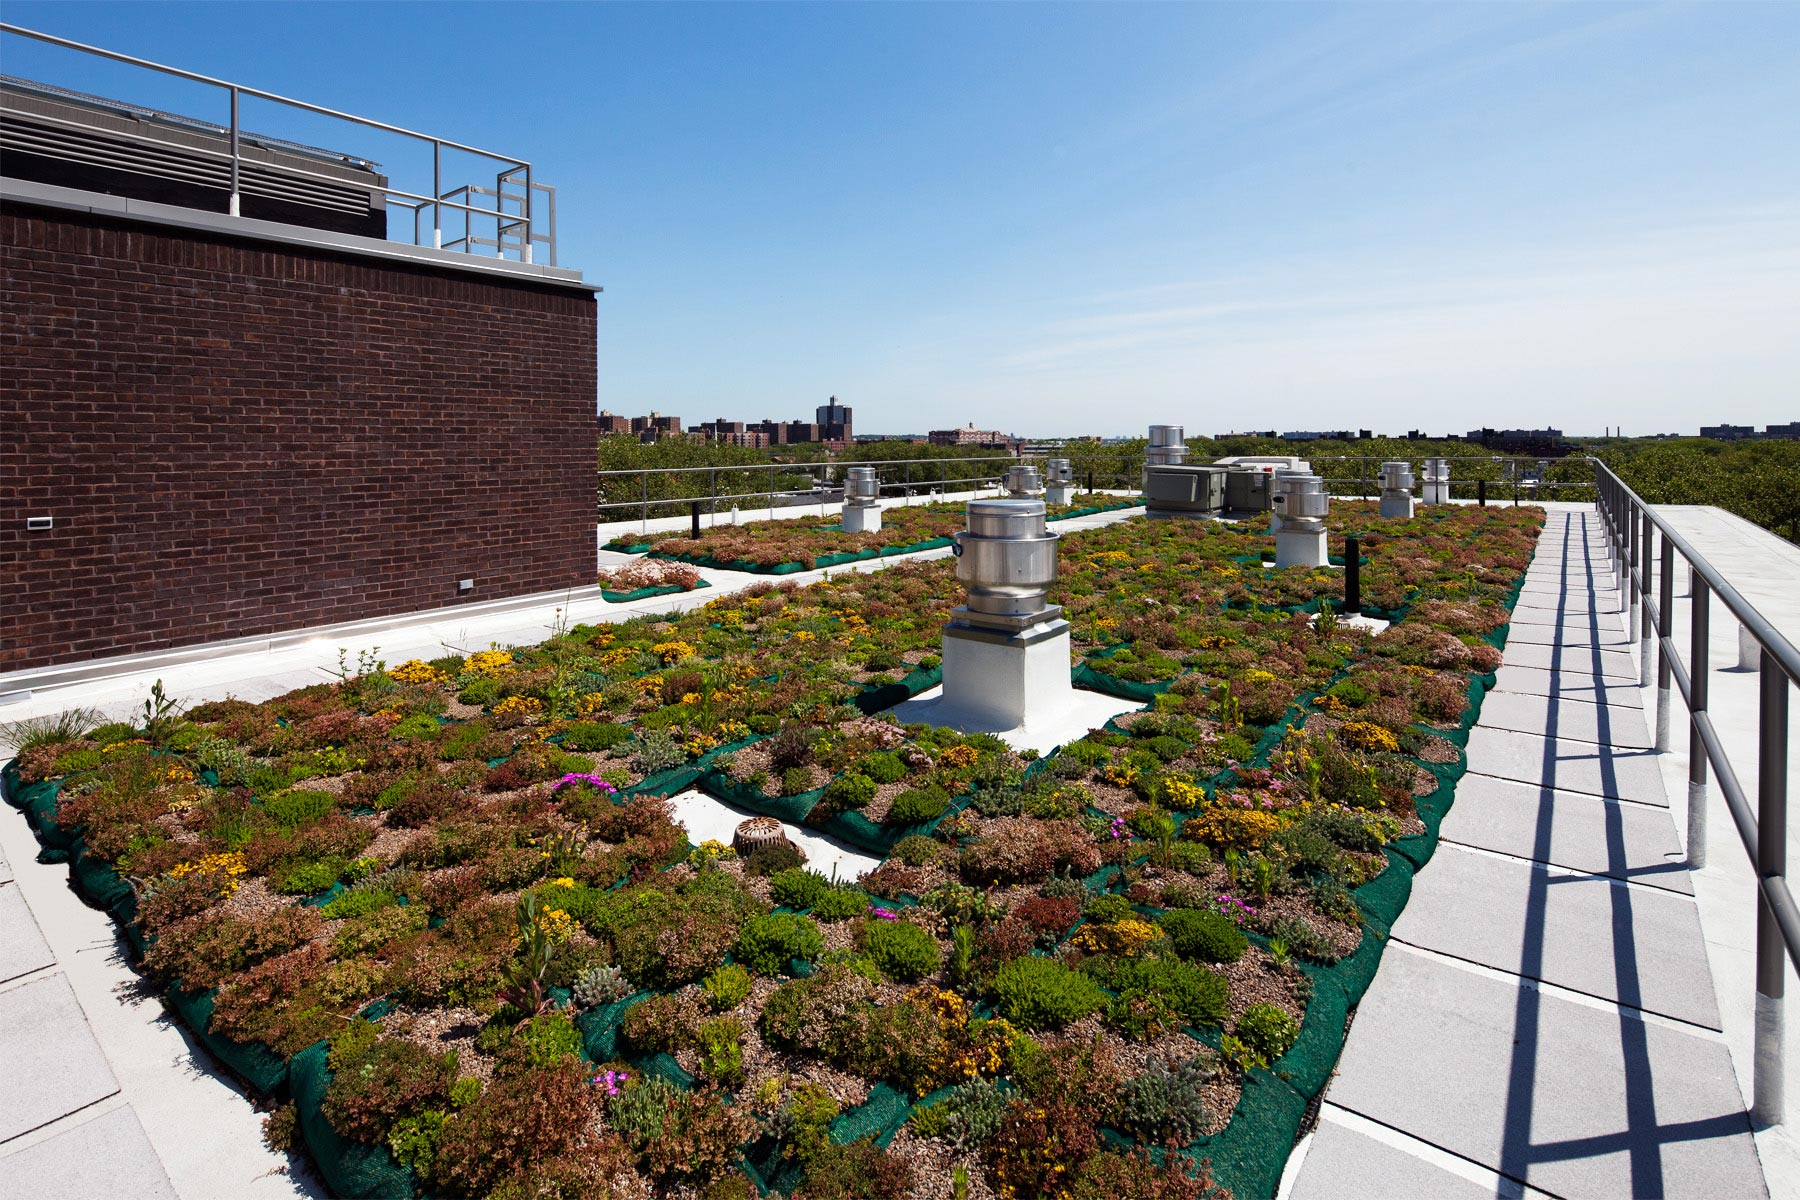 Roof garden on Breaking Ground's Hegeman residence in Brownsville, Brooklyn. The garden is designed not only to be beautiful but to improve the building's energy efficiency.